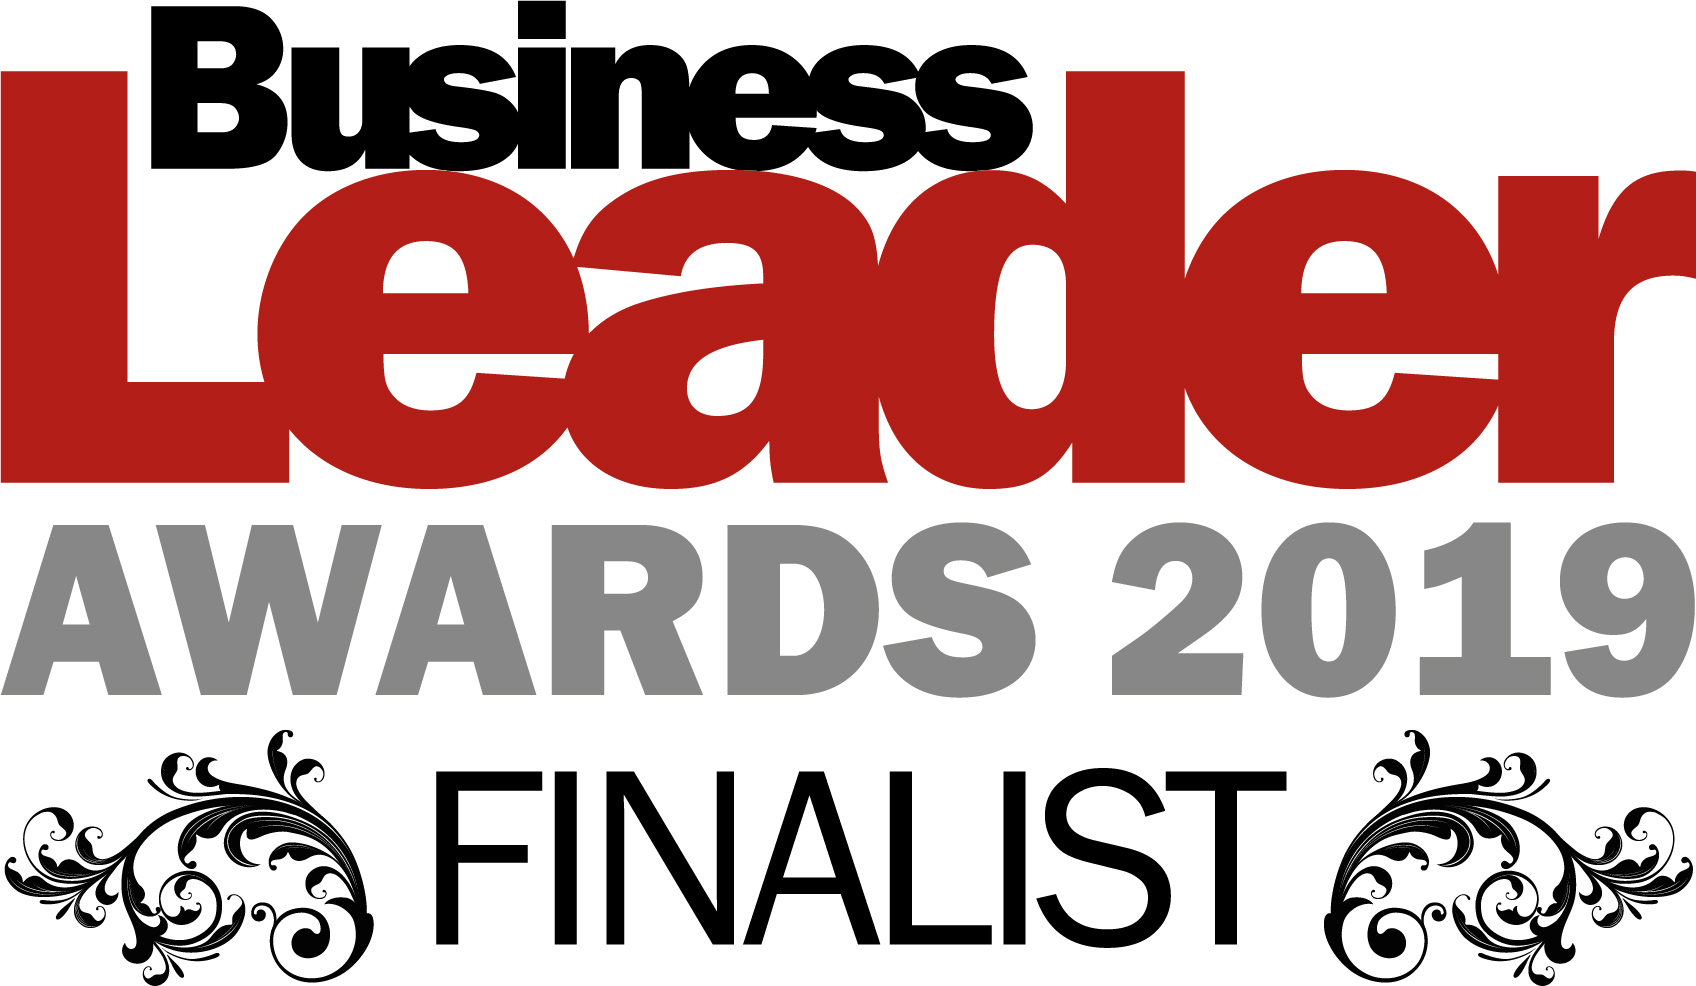 Business Leader Award Finalist.jpg